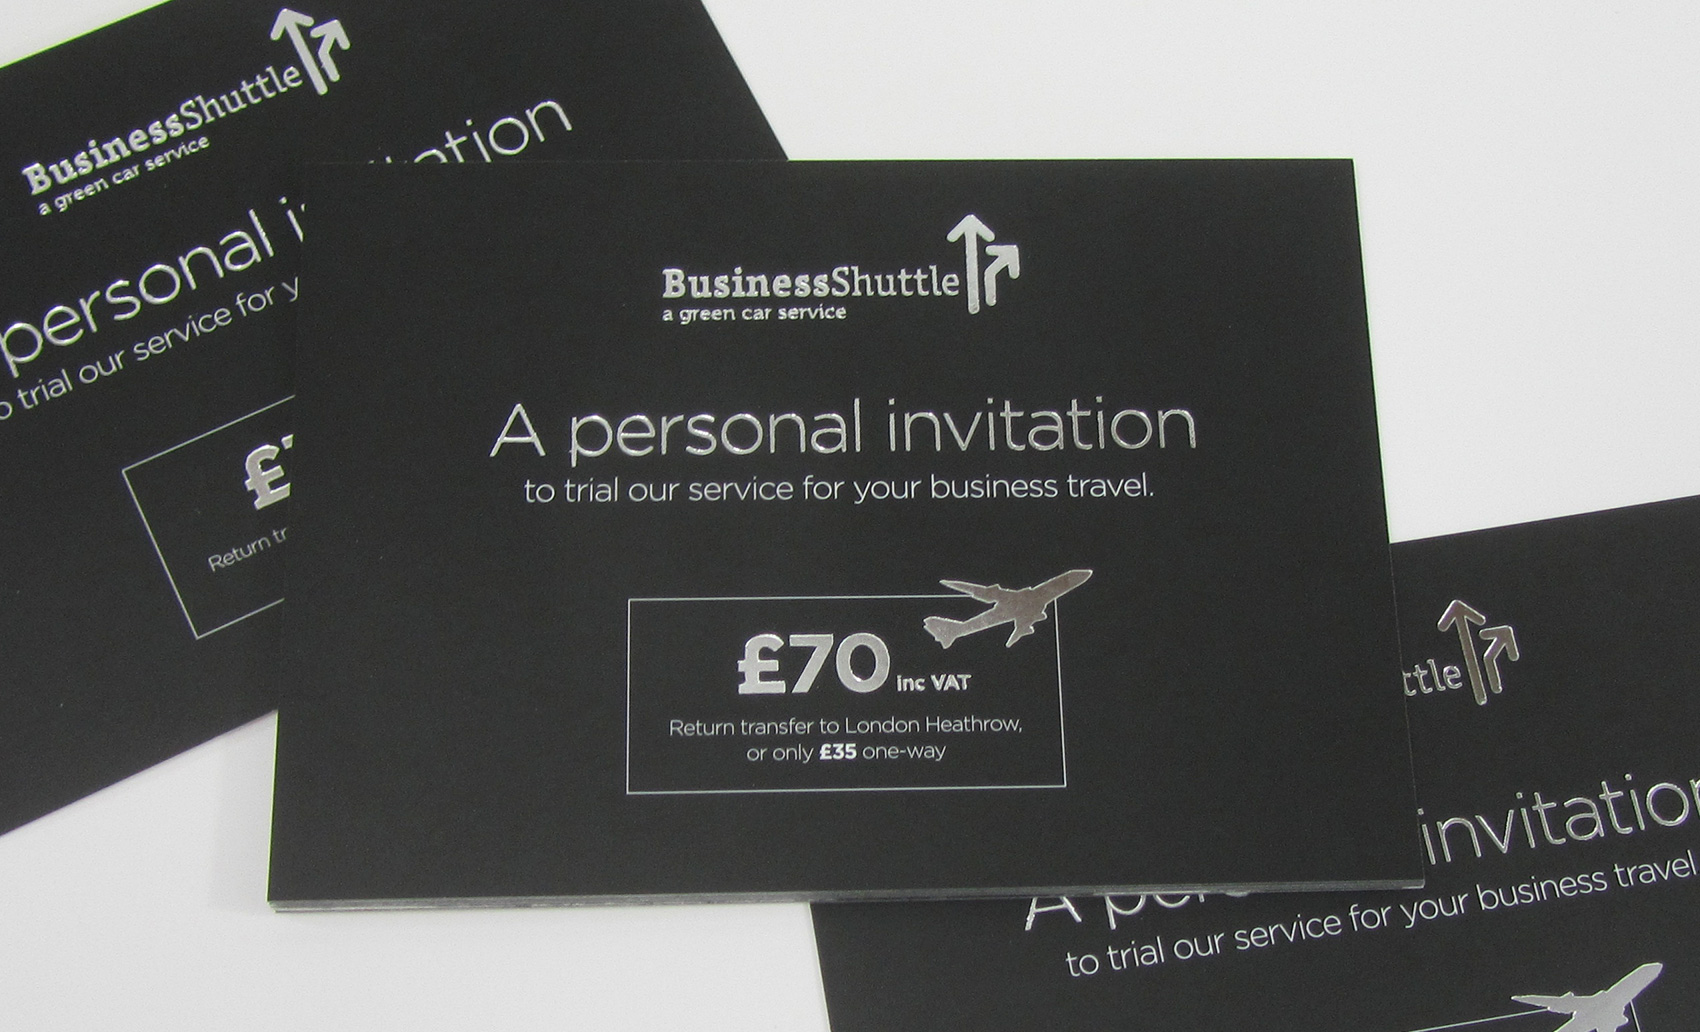 businessshuttle_voucher